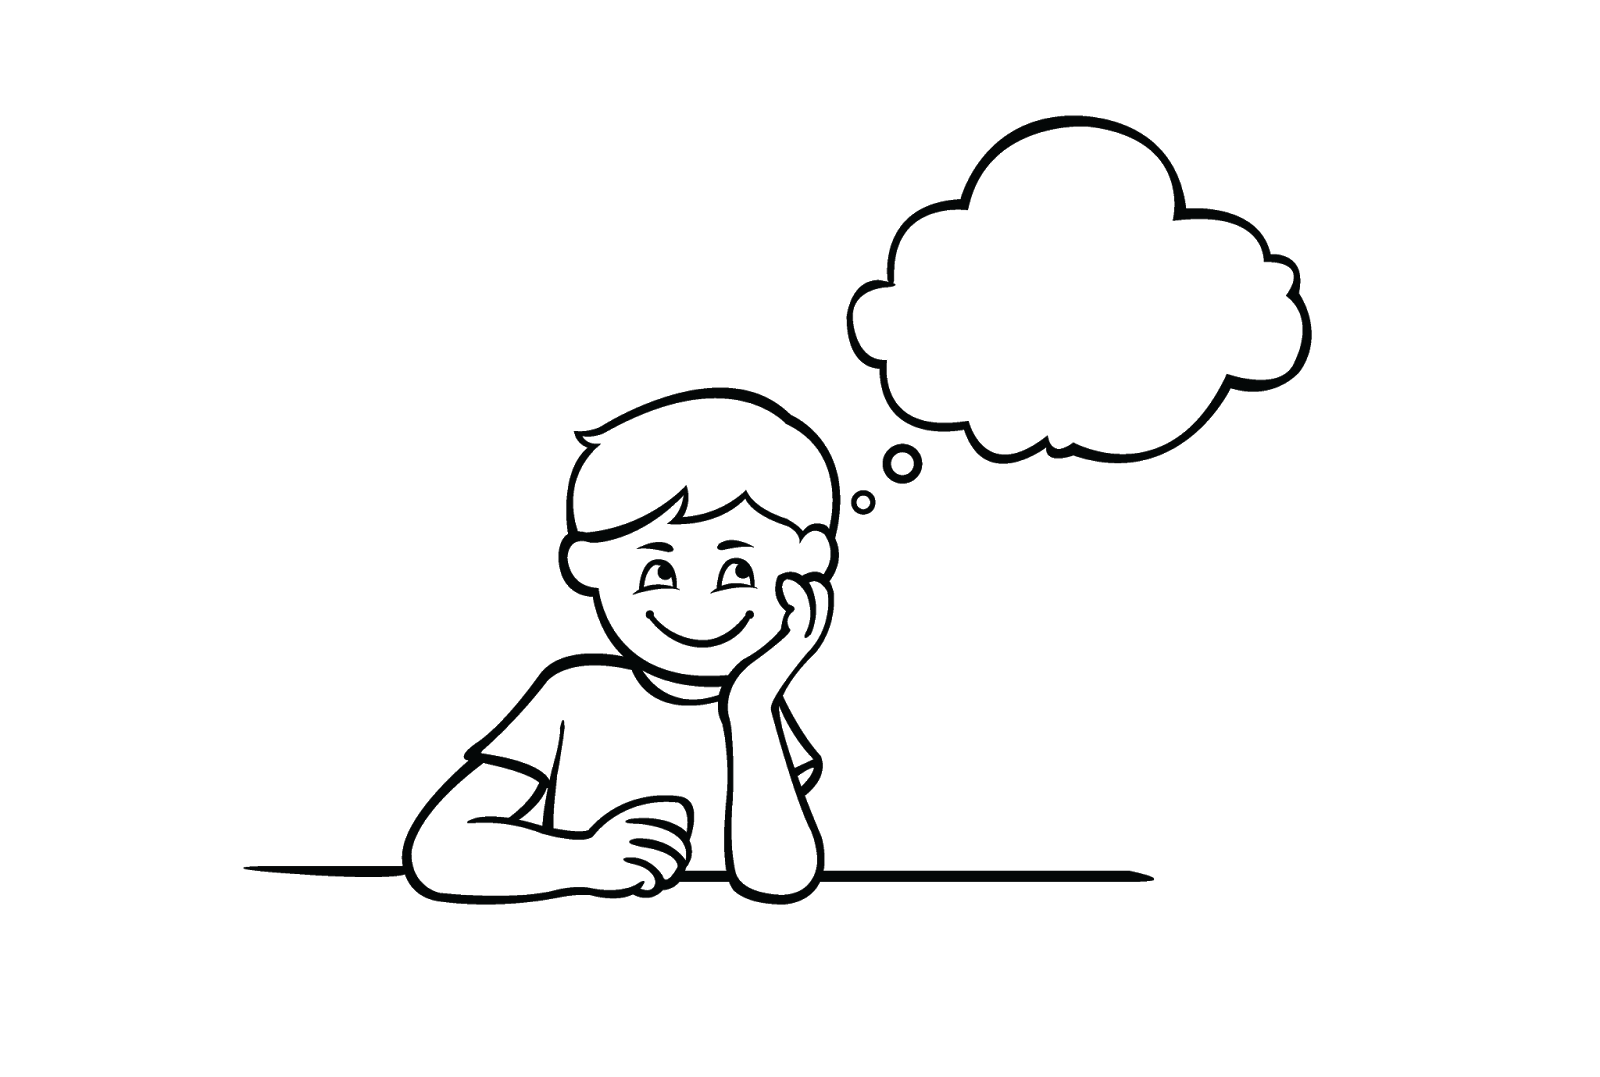 Daydreaming clipart multiple choice, Daydreaming multiple